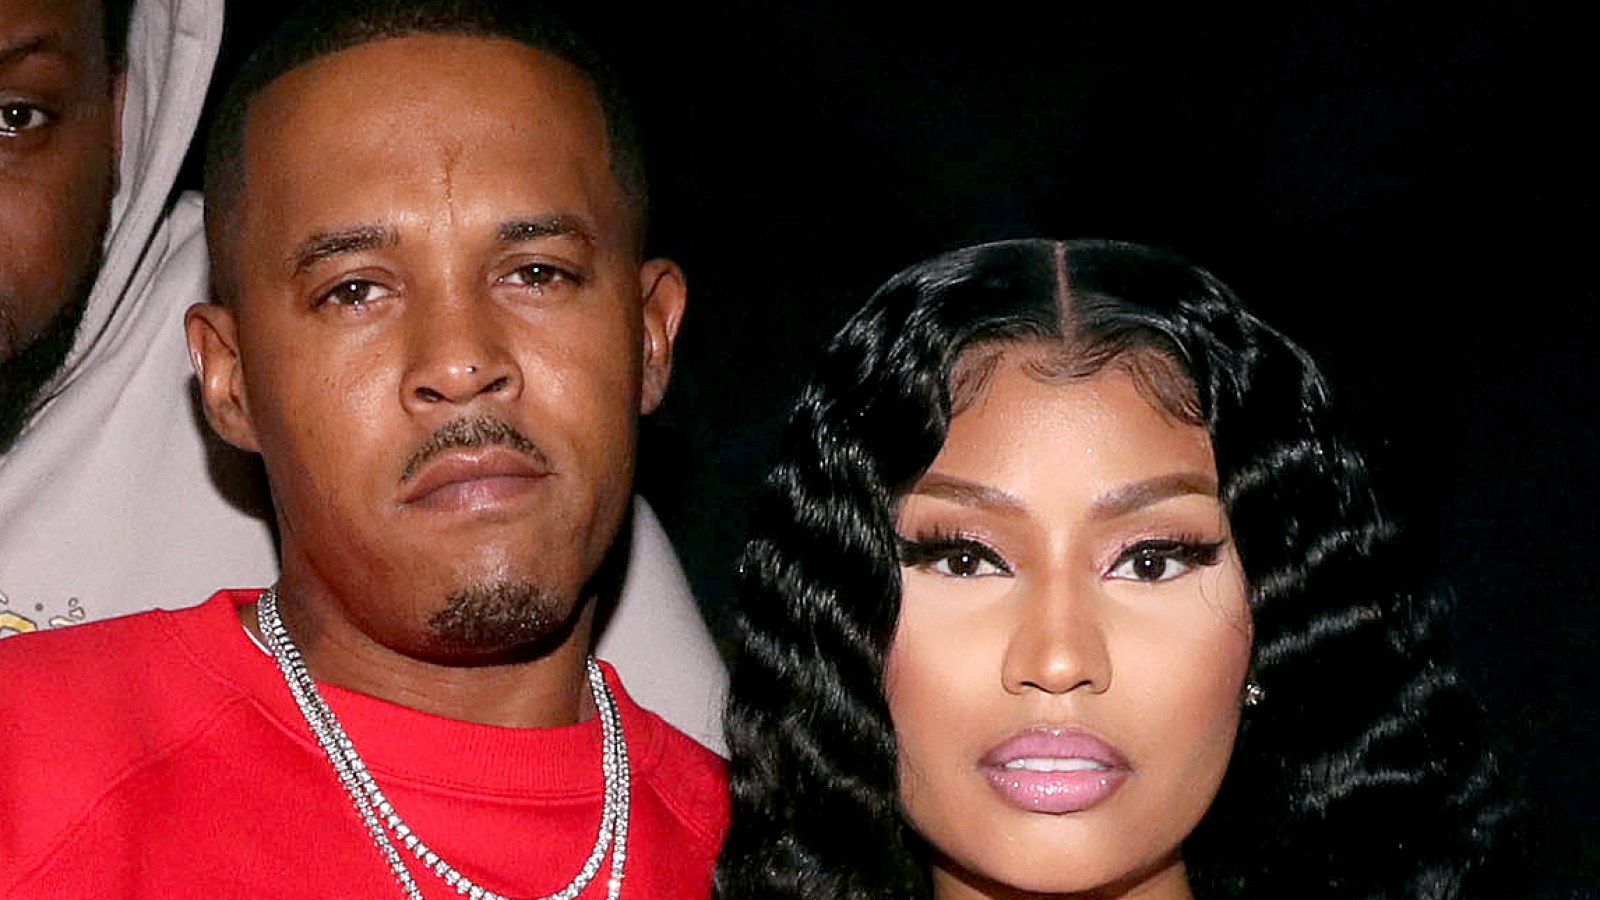 7f4ac58998ea4 Nicki Minaj and Kenneth 'Zoo' Petty: A Timeline of Their Controversial  Relationship